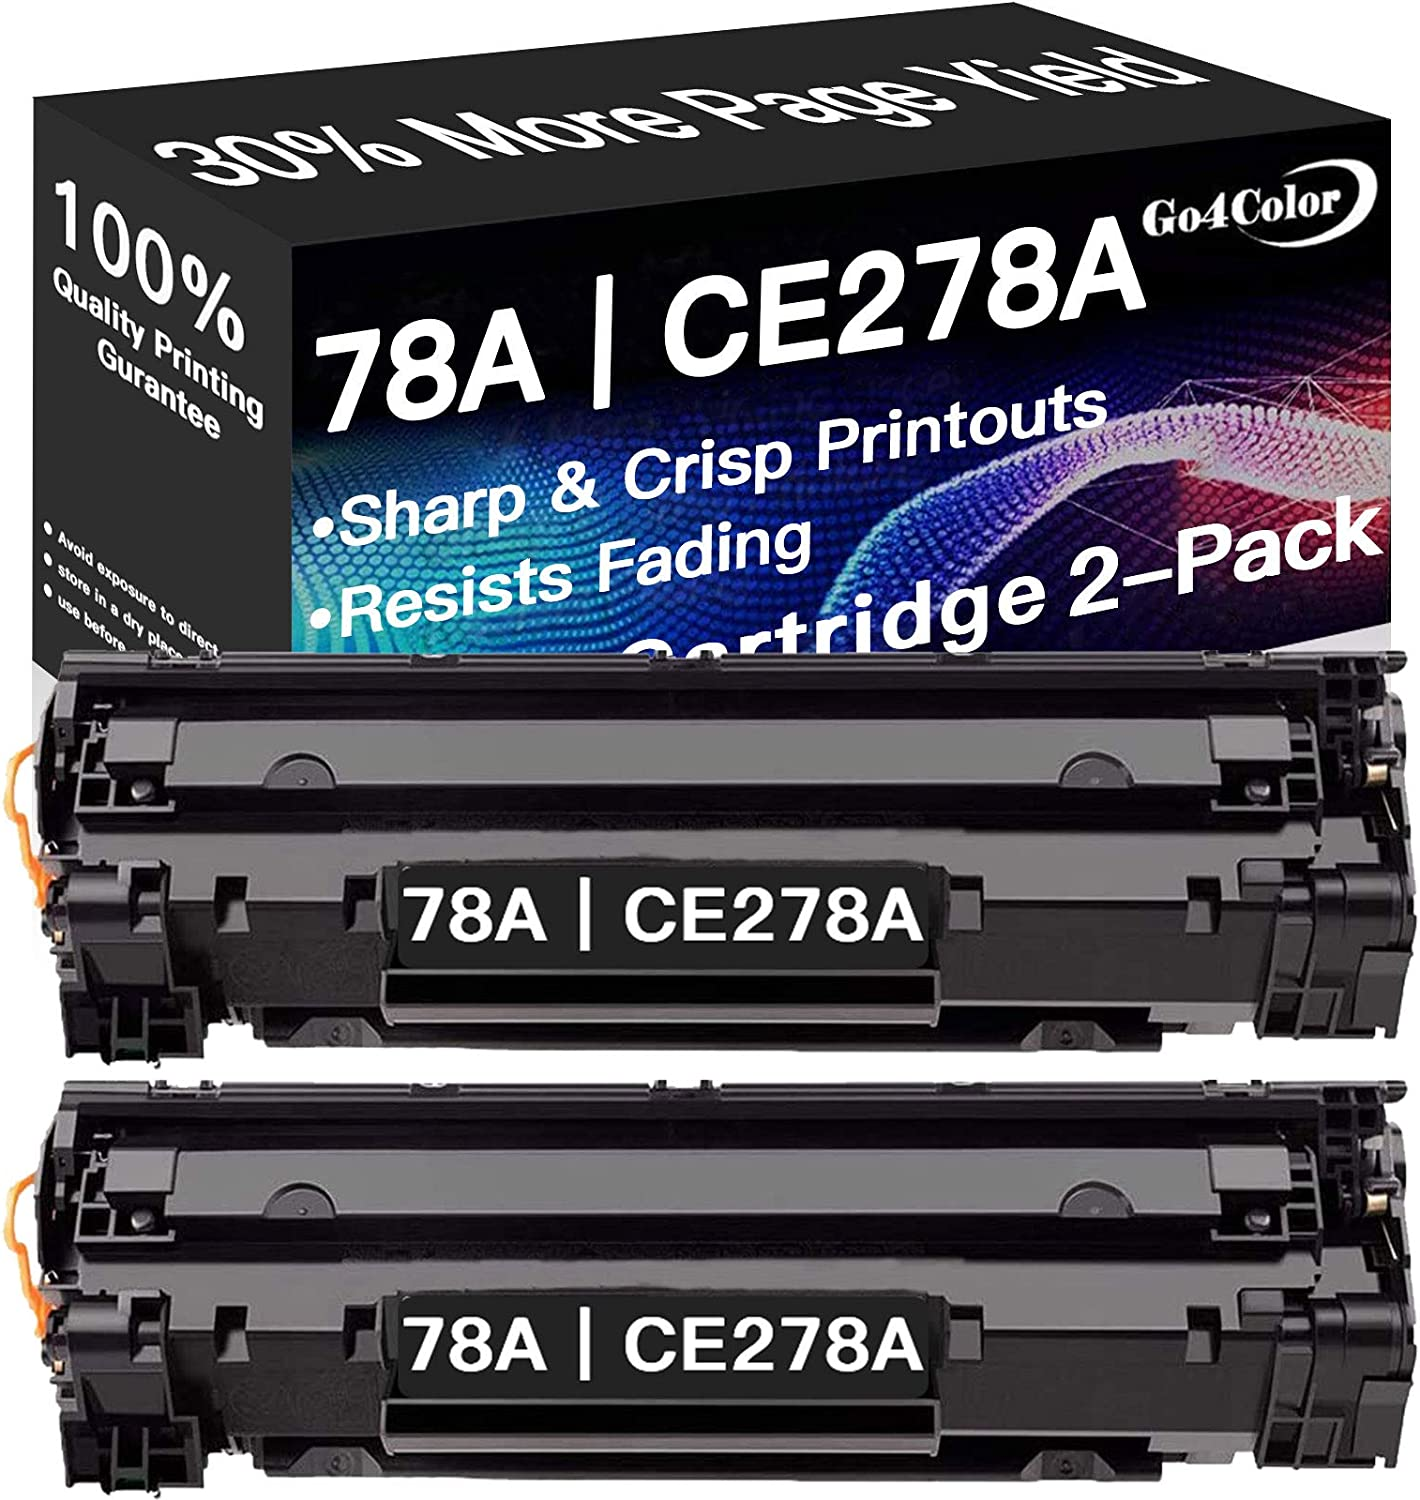 2-Pack Compatible 78A Toner Cartridge CE278A for HP Laserjet Pro M1536dnf P1606dn P1606n P1566 M1537dnf M1538dnf M1539dnf (Black), by Go4Color